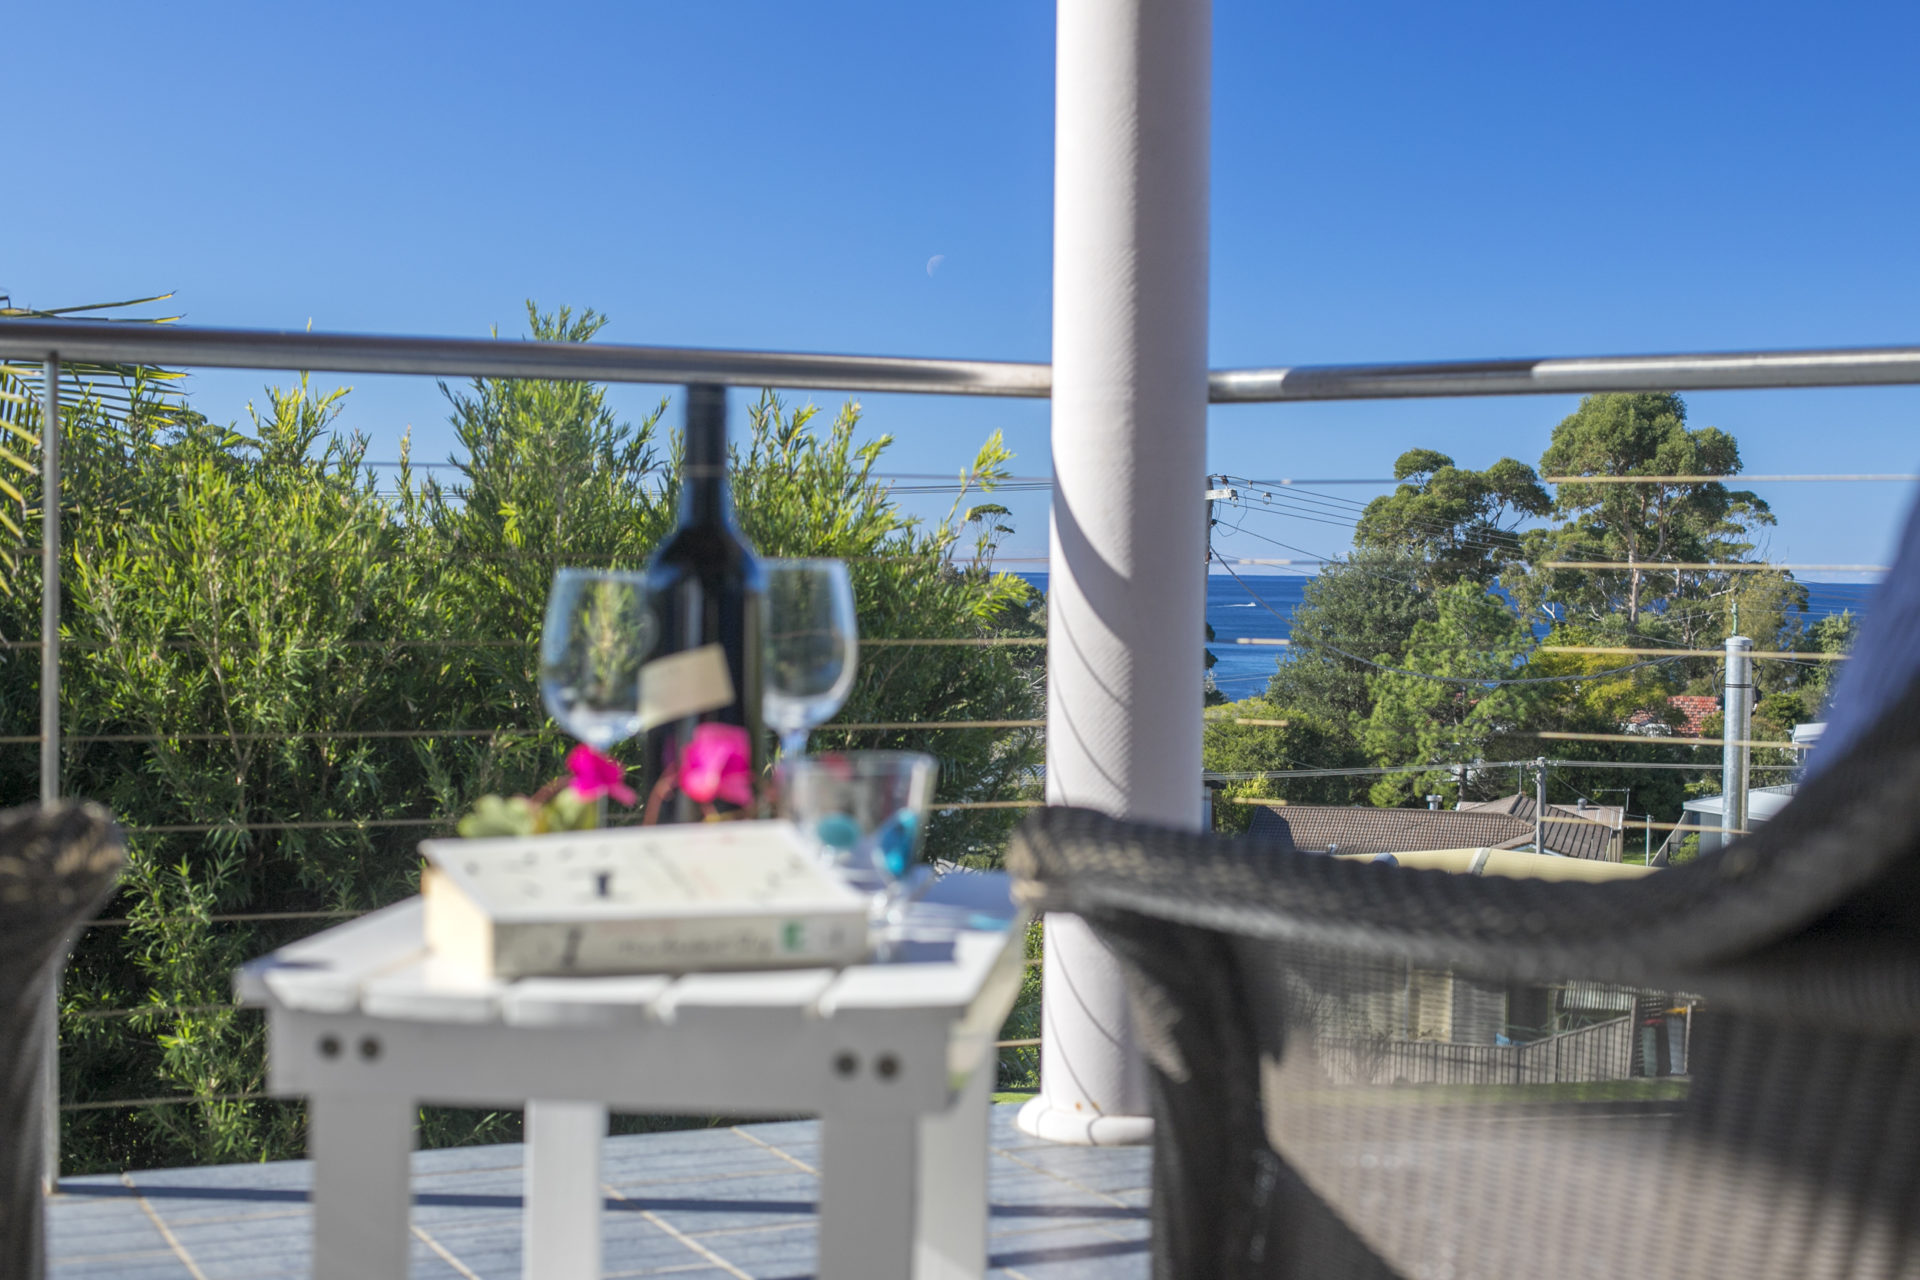 58 Seaview St - Summer Days